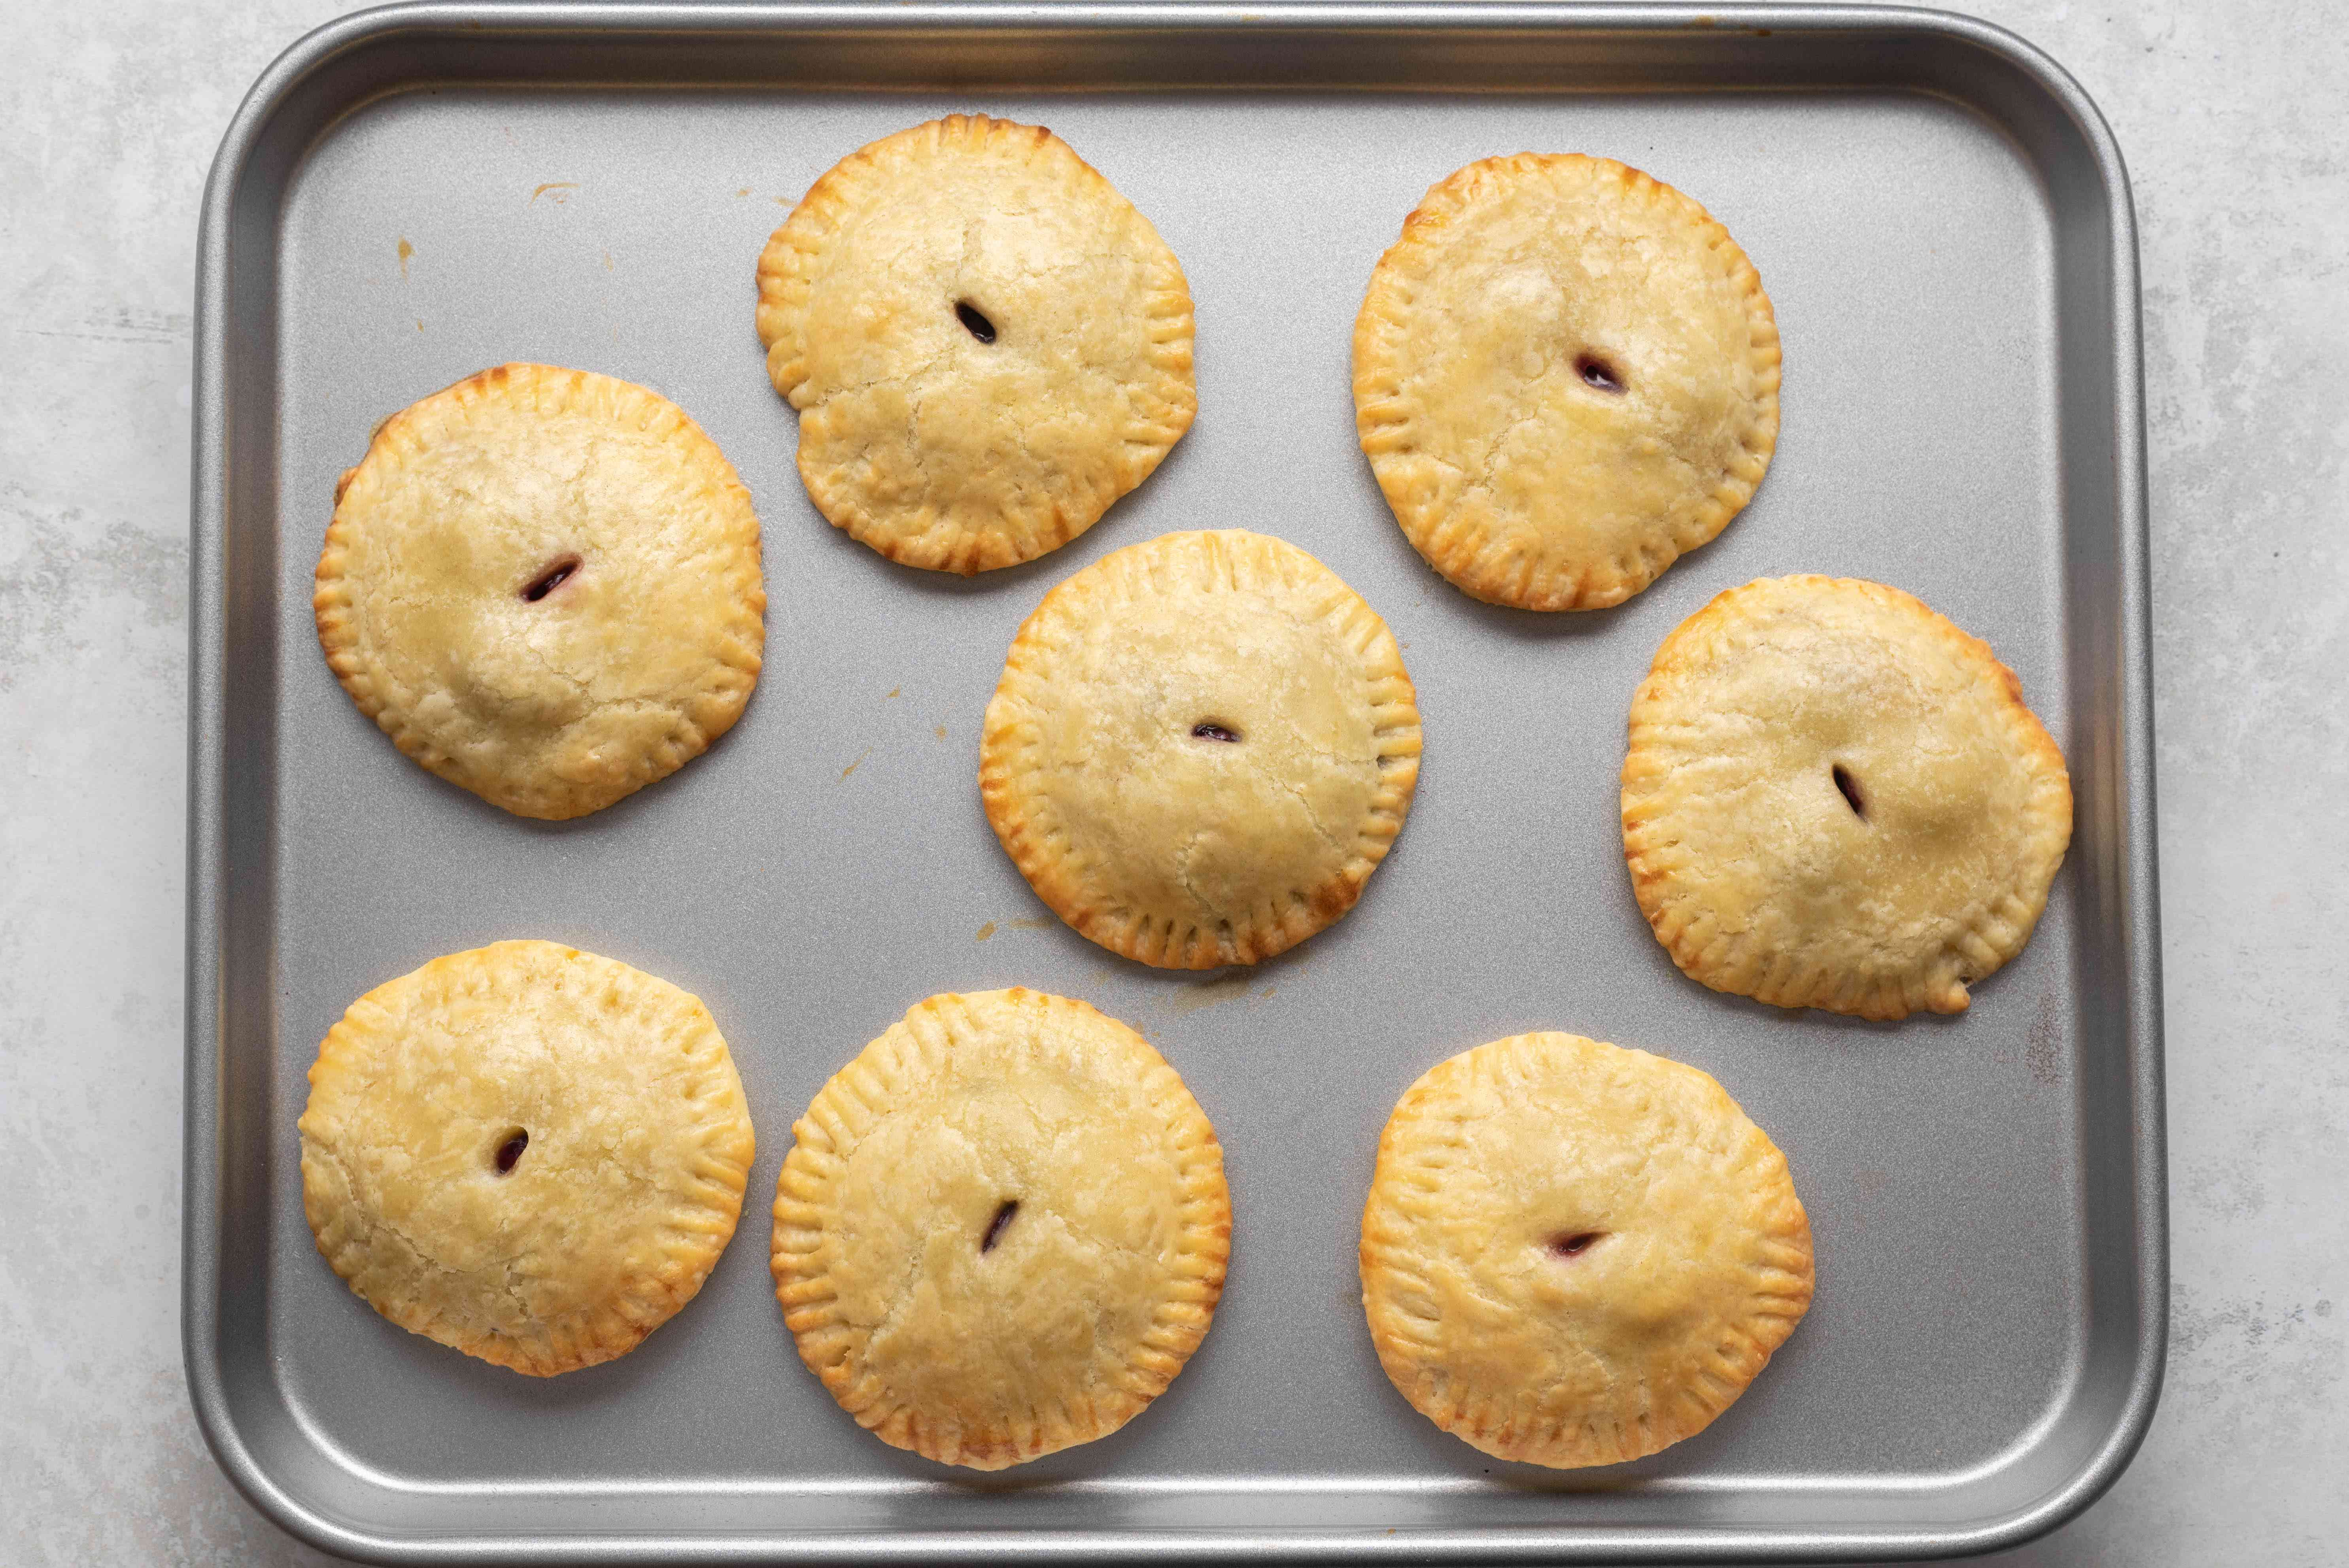 baked pies on a baking sheet